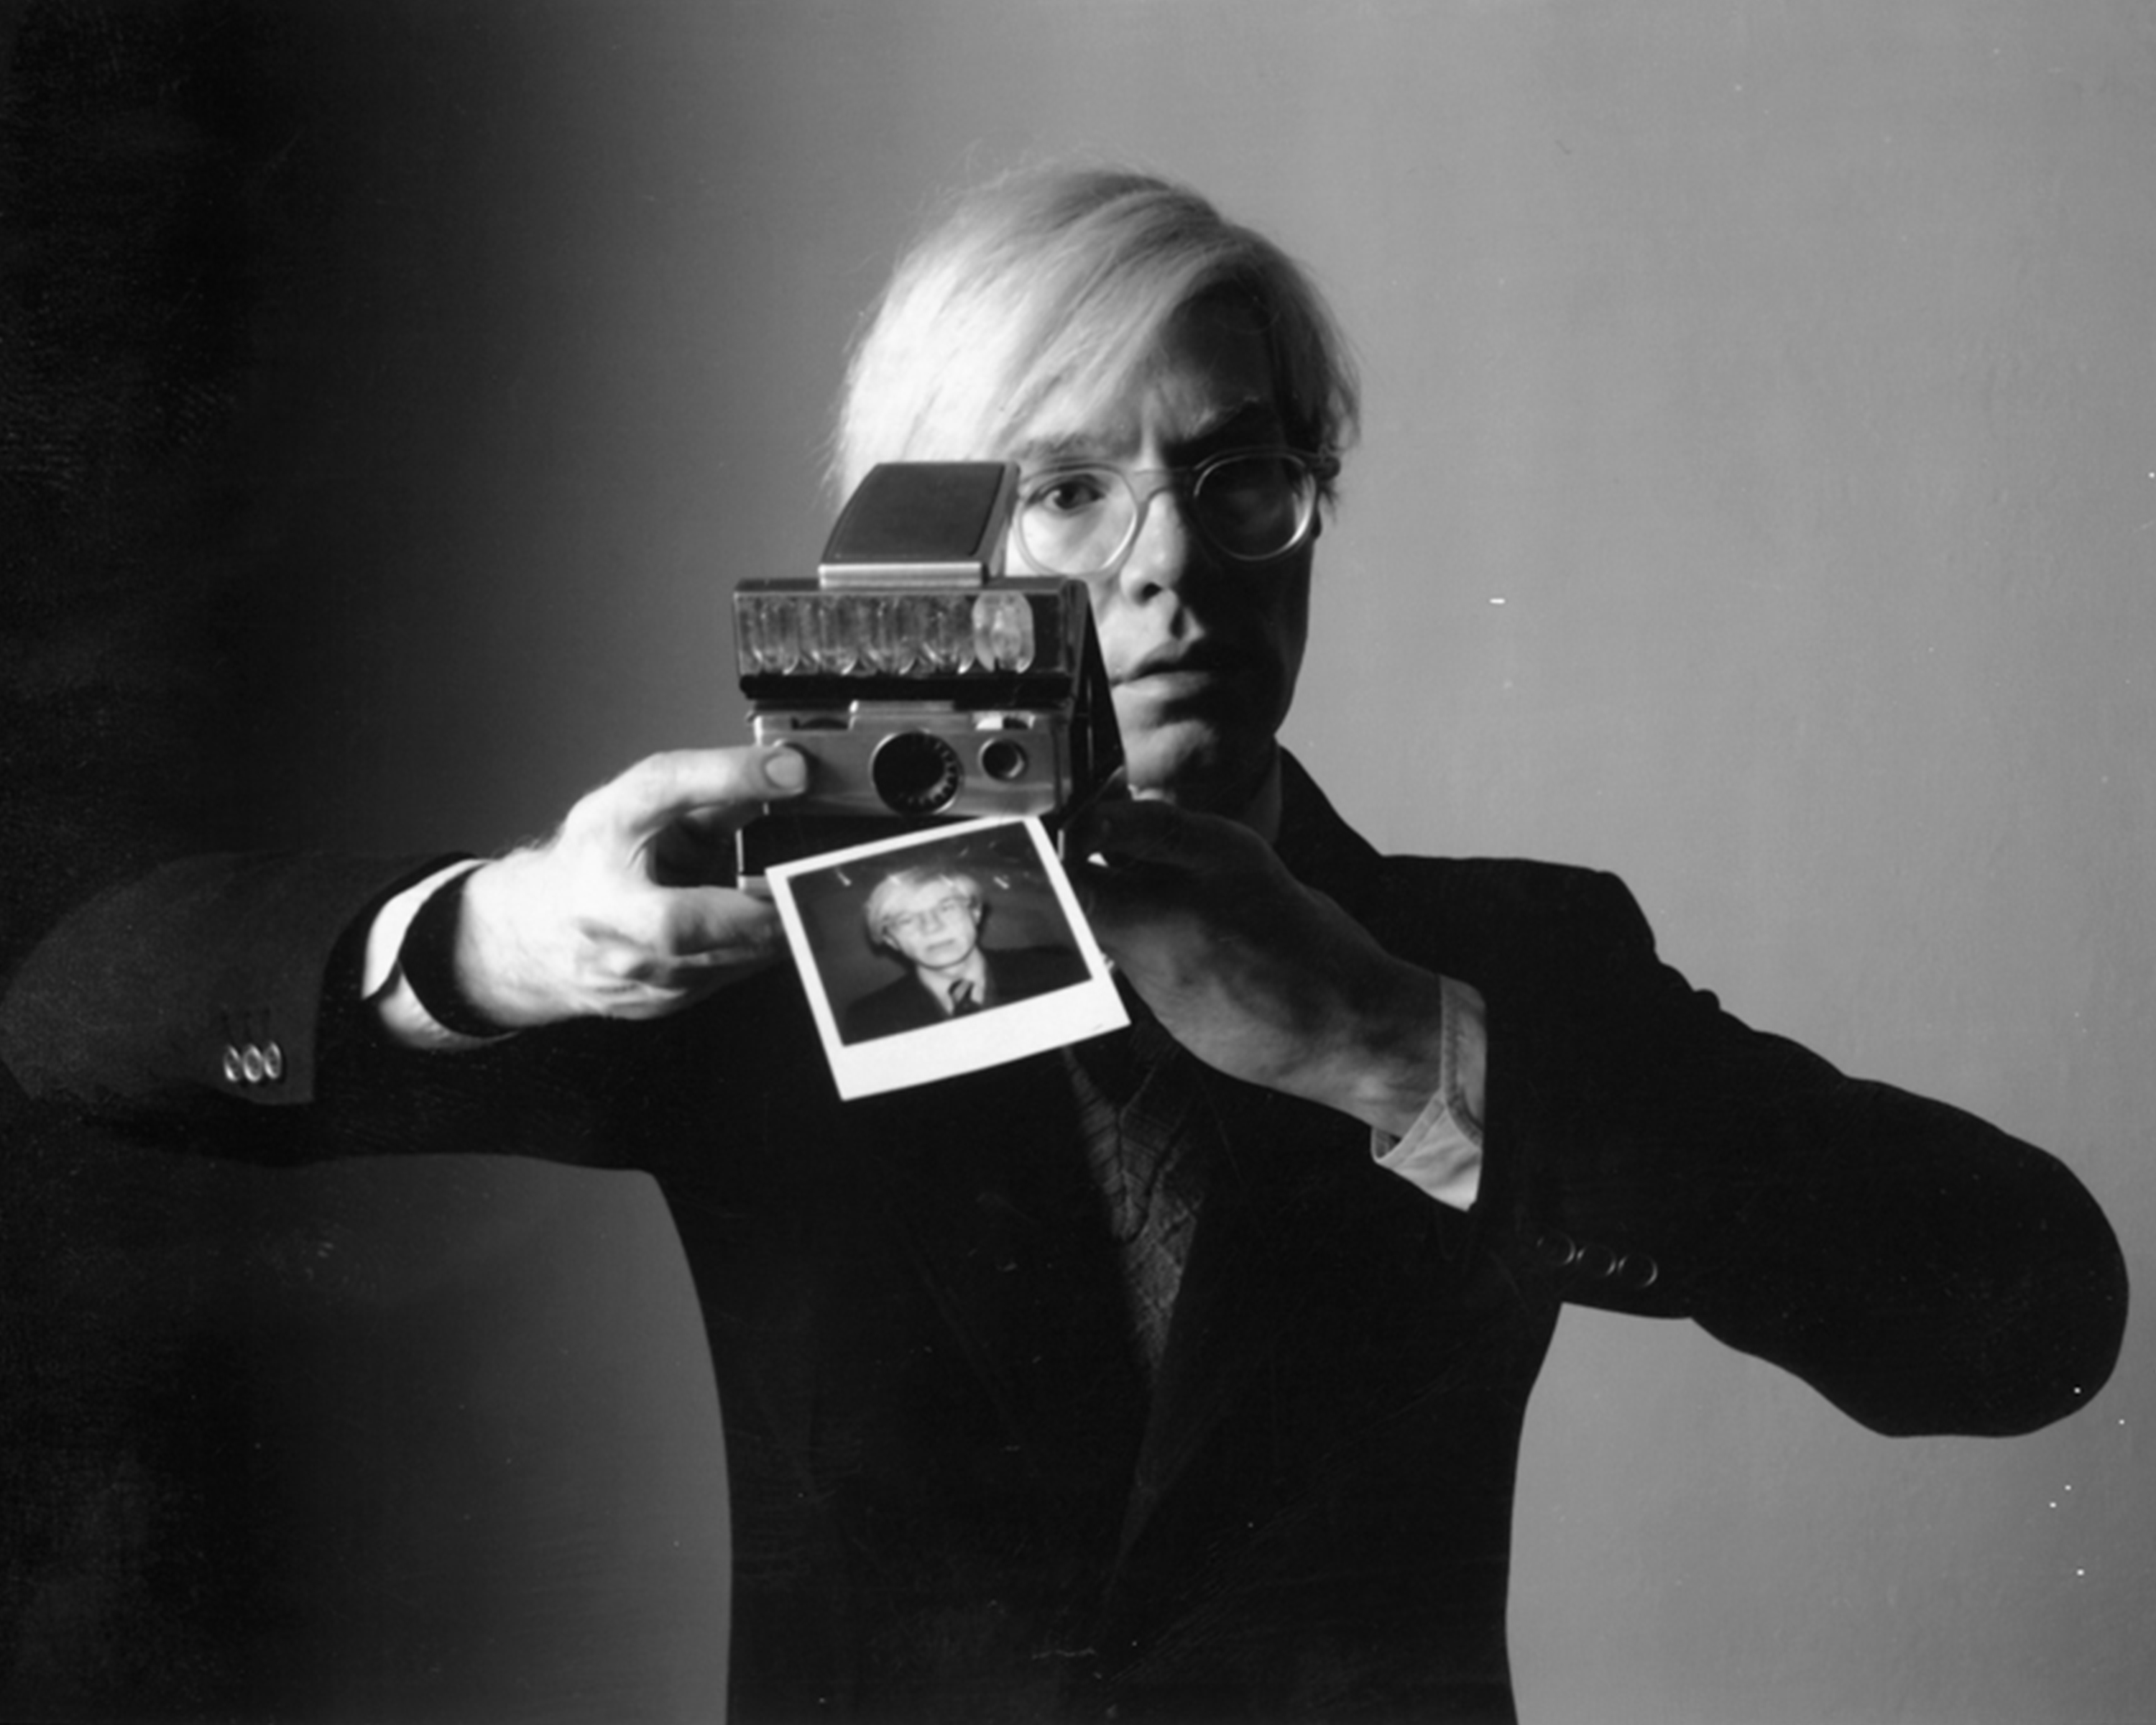 Andy Warhol Pop Icon Warhol 39s Personal Polaroids In Singapore Popspoken